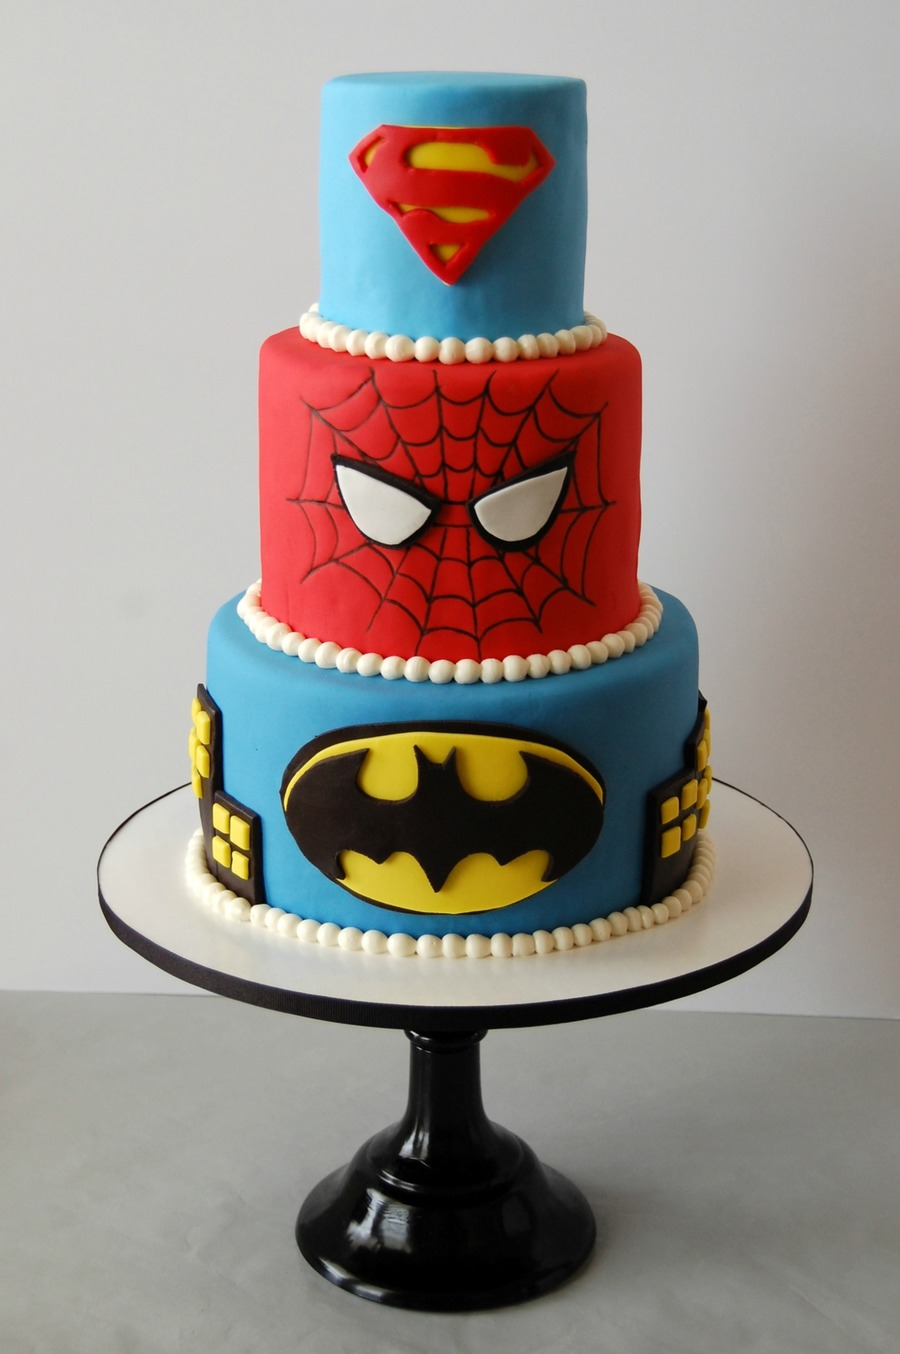 superhero birthday cake Superhero Birthday Cake   CakeCentral.com superhero birthday cake